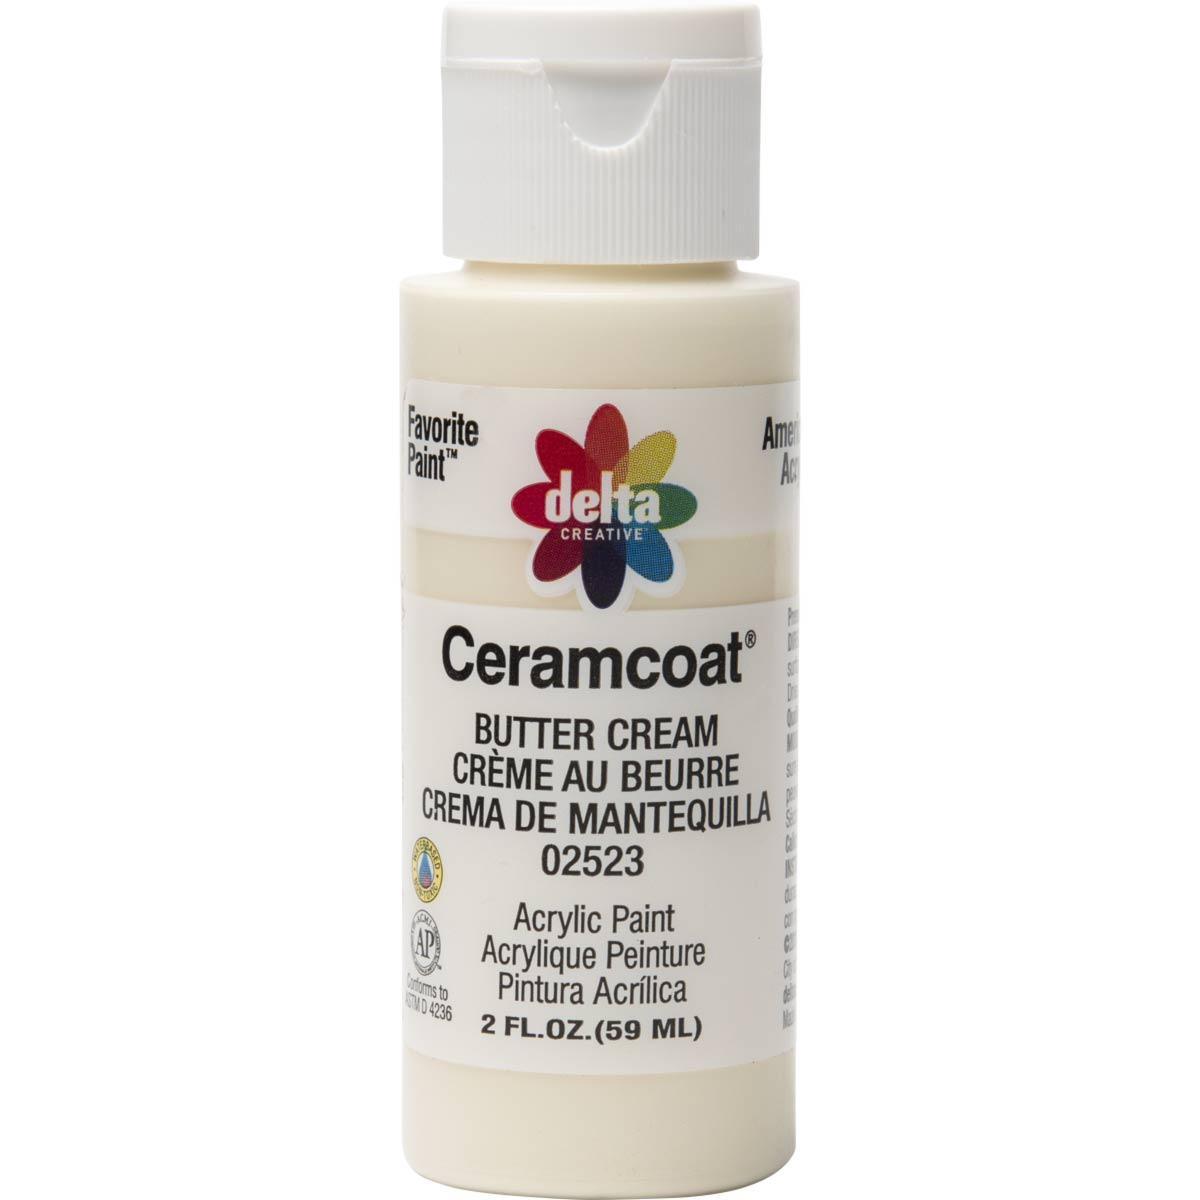 Delta Ceramcoat ® Acrylic Paint - Butter Cream, 2 oz.